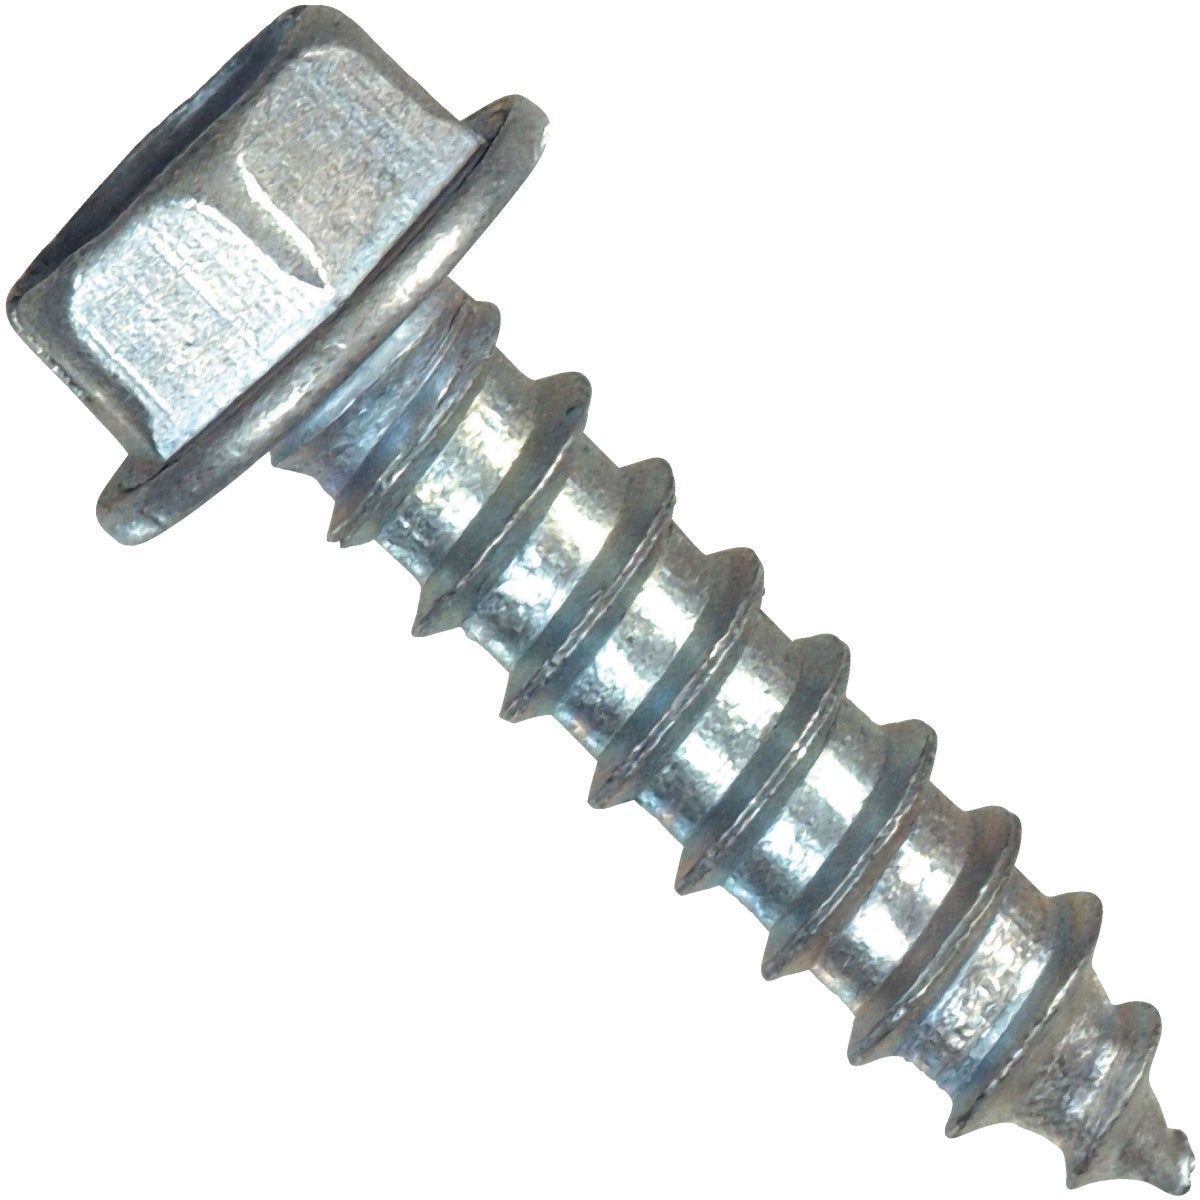 6X1/2 HWH SHT MTL SCREW - 70253 by Hillman Fastener